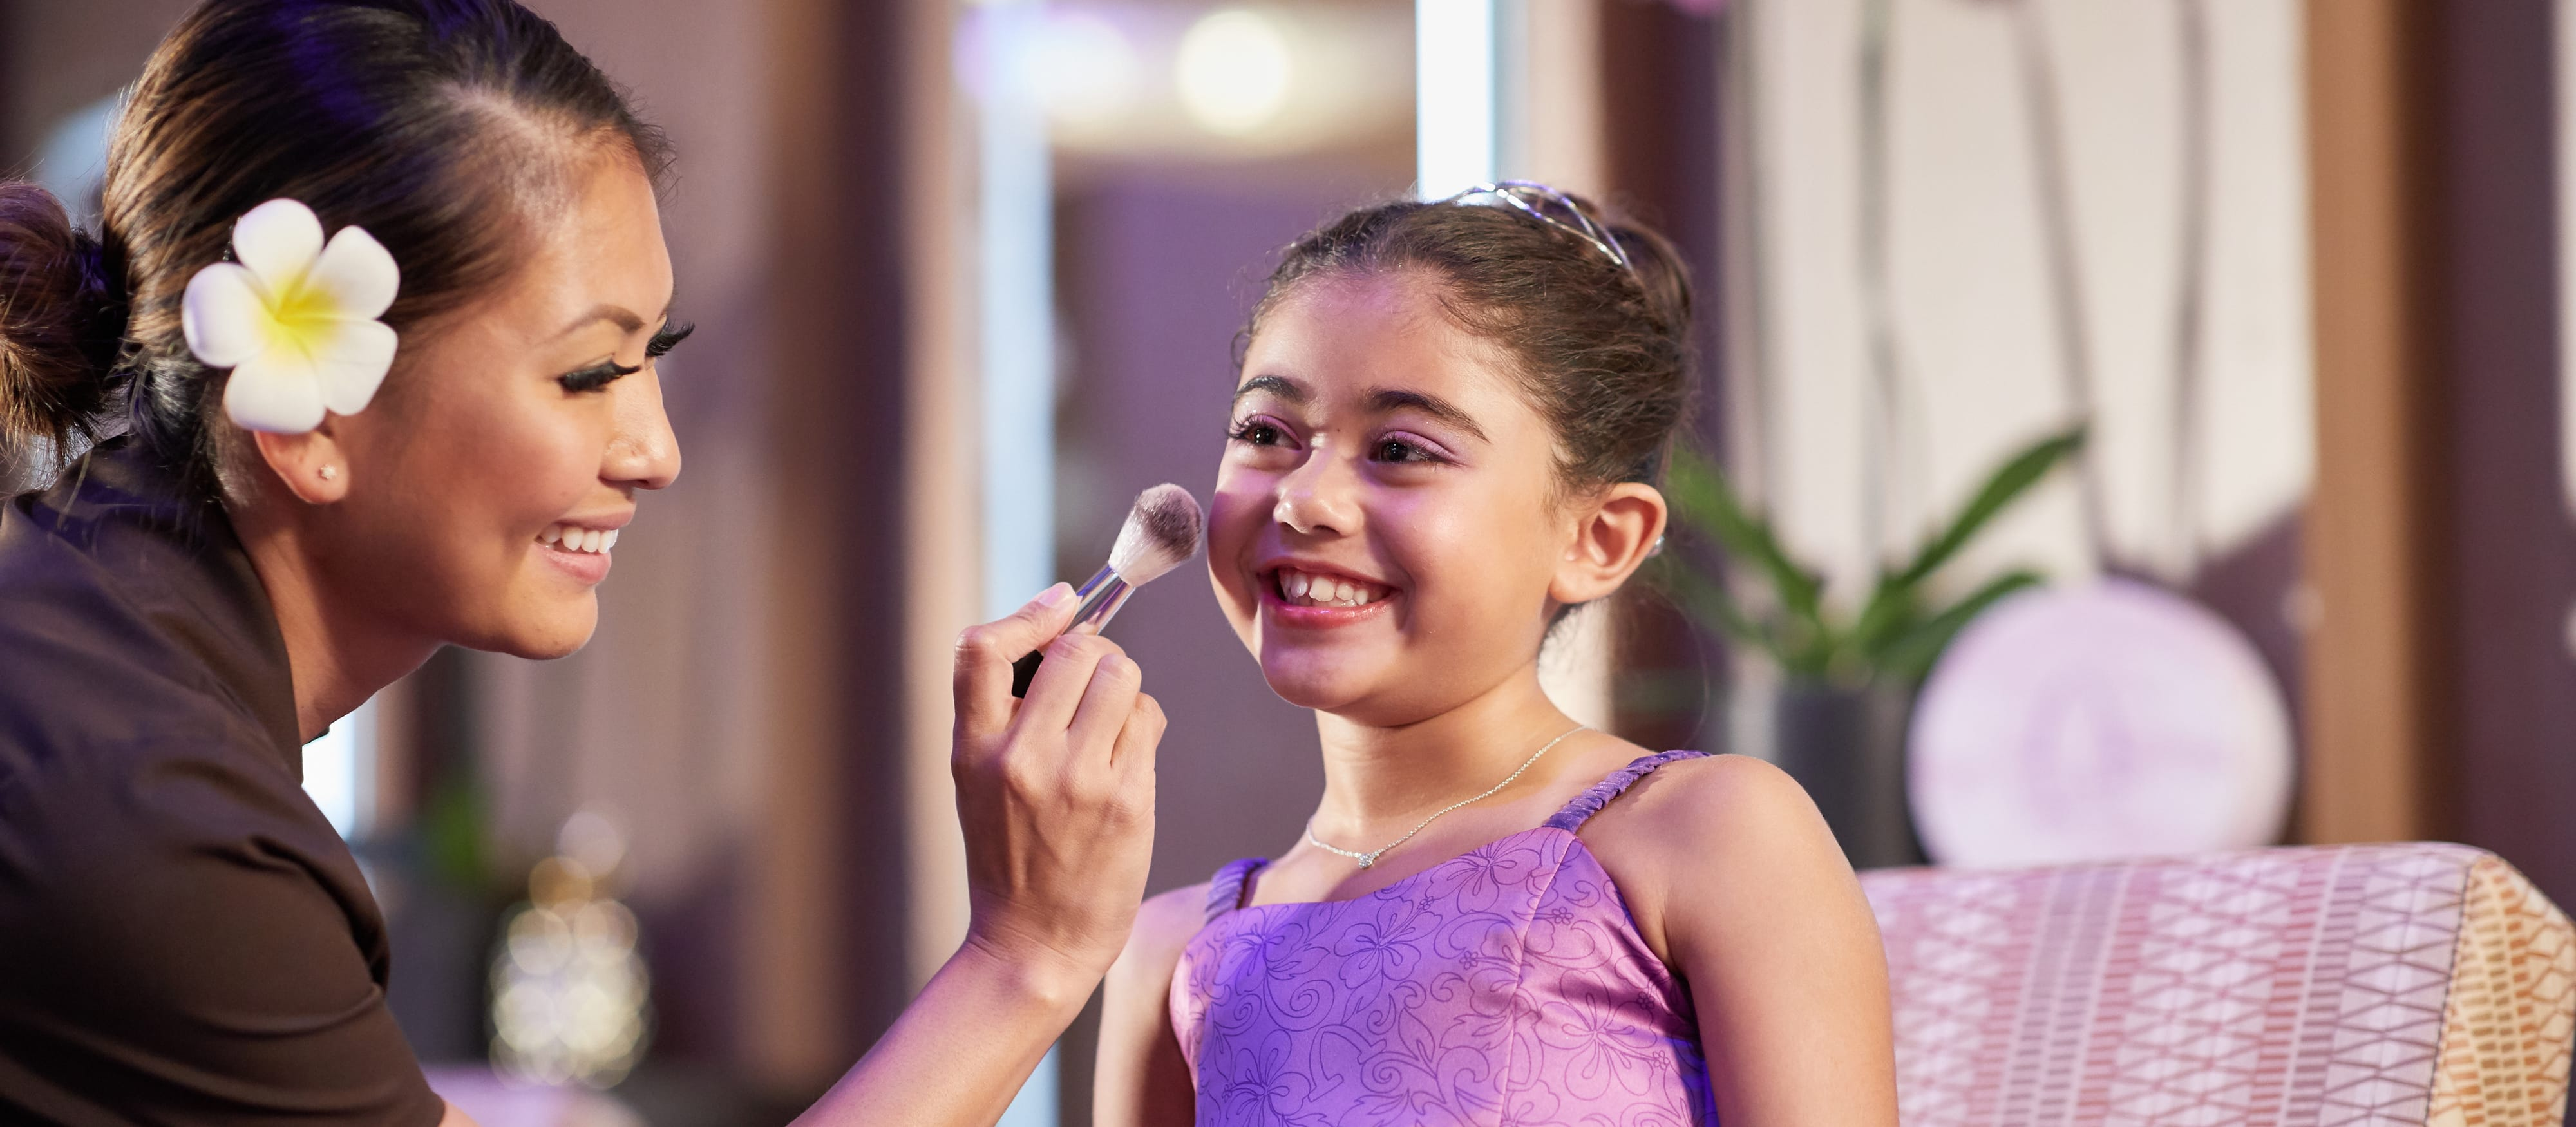 A Painted Sky: HI Style Studio stylist with a flower behind her ear applies makeup to a smiling young girl at Painted Sky: HI Style Studio at Aulani Resort